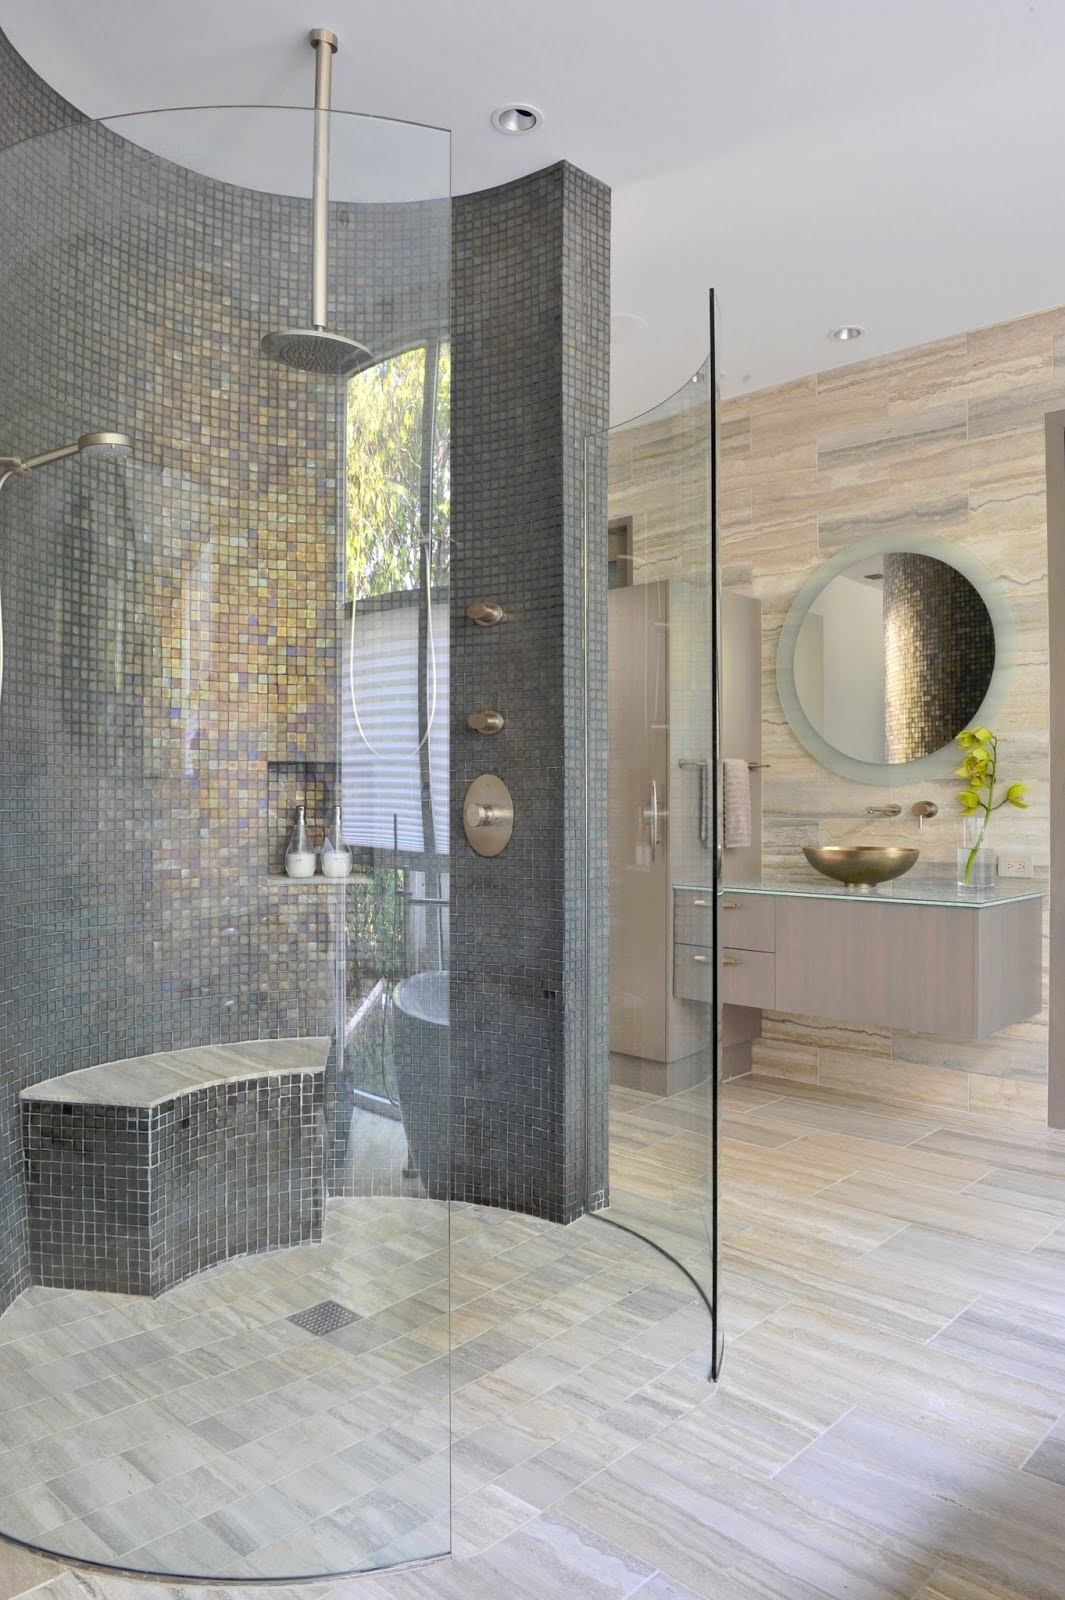 stunning and luxurious modern bathroom design idea with round glass shower design with bench and small tile mosaic pattern and lighting and round wall mirror